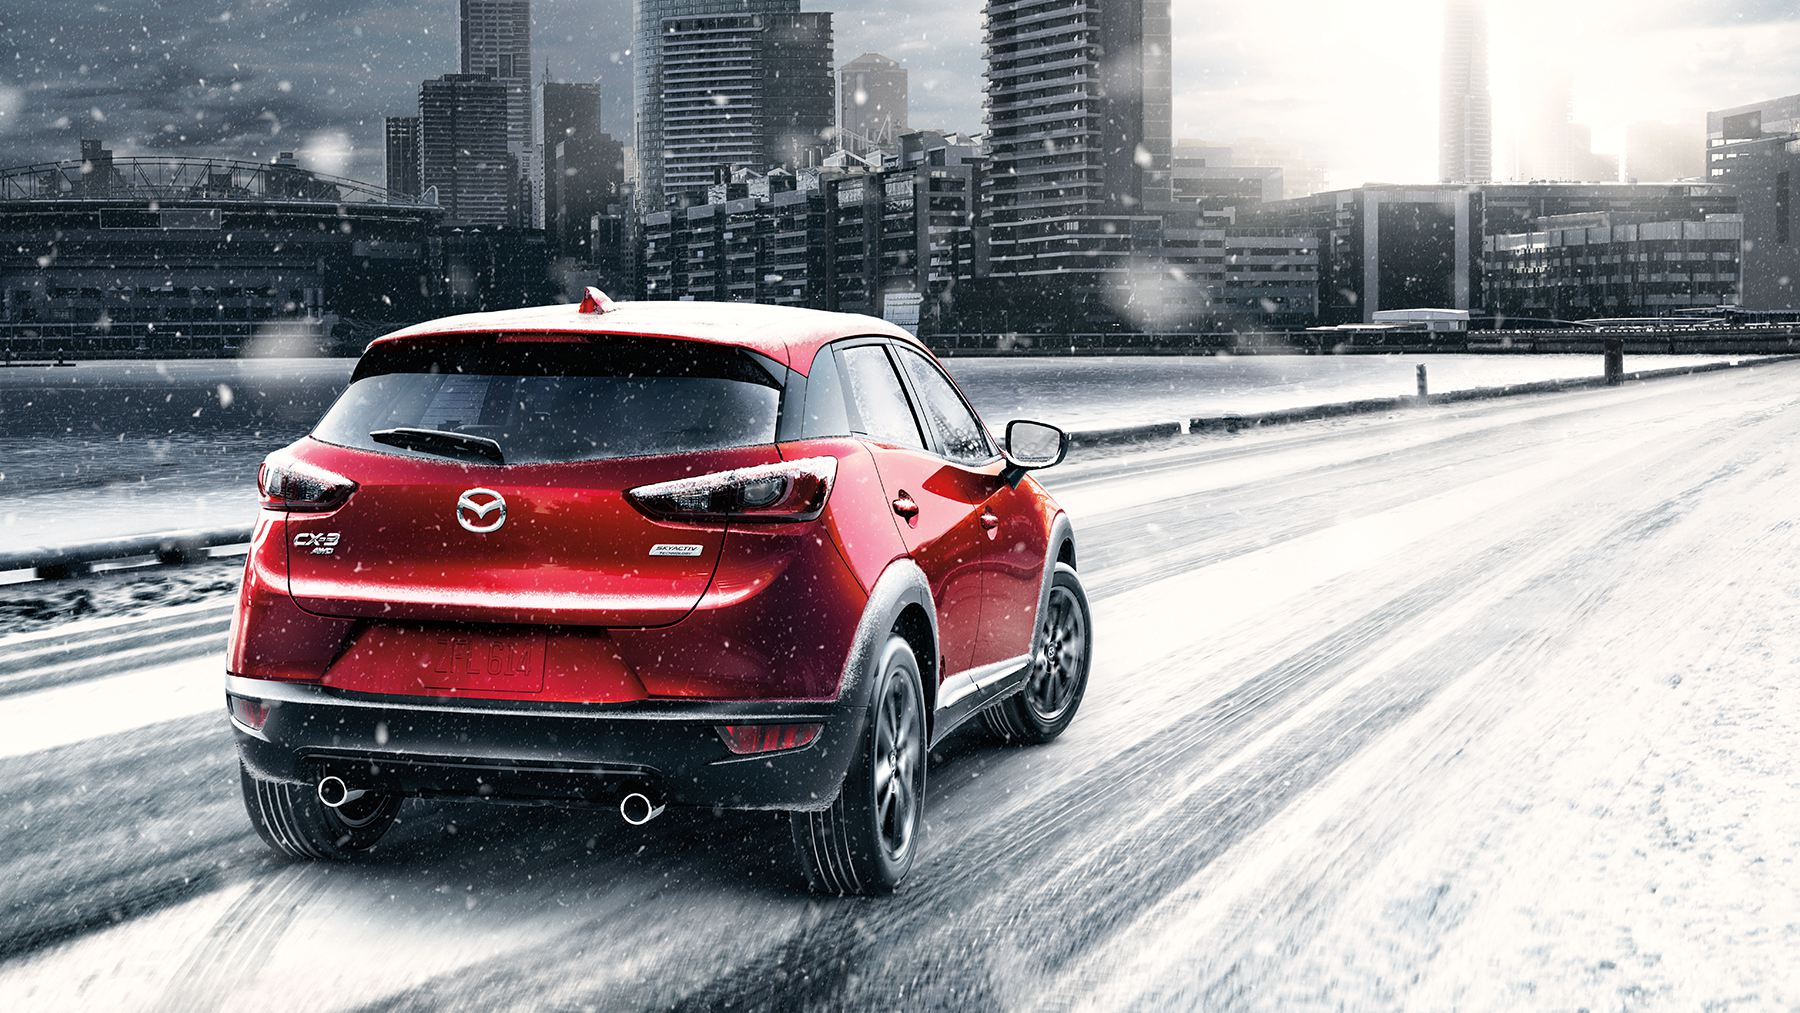 2017 Mazda CX-3 Rear Exterior Red